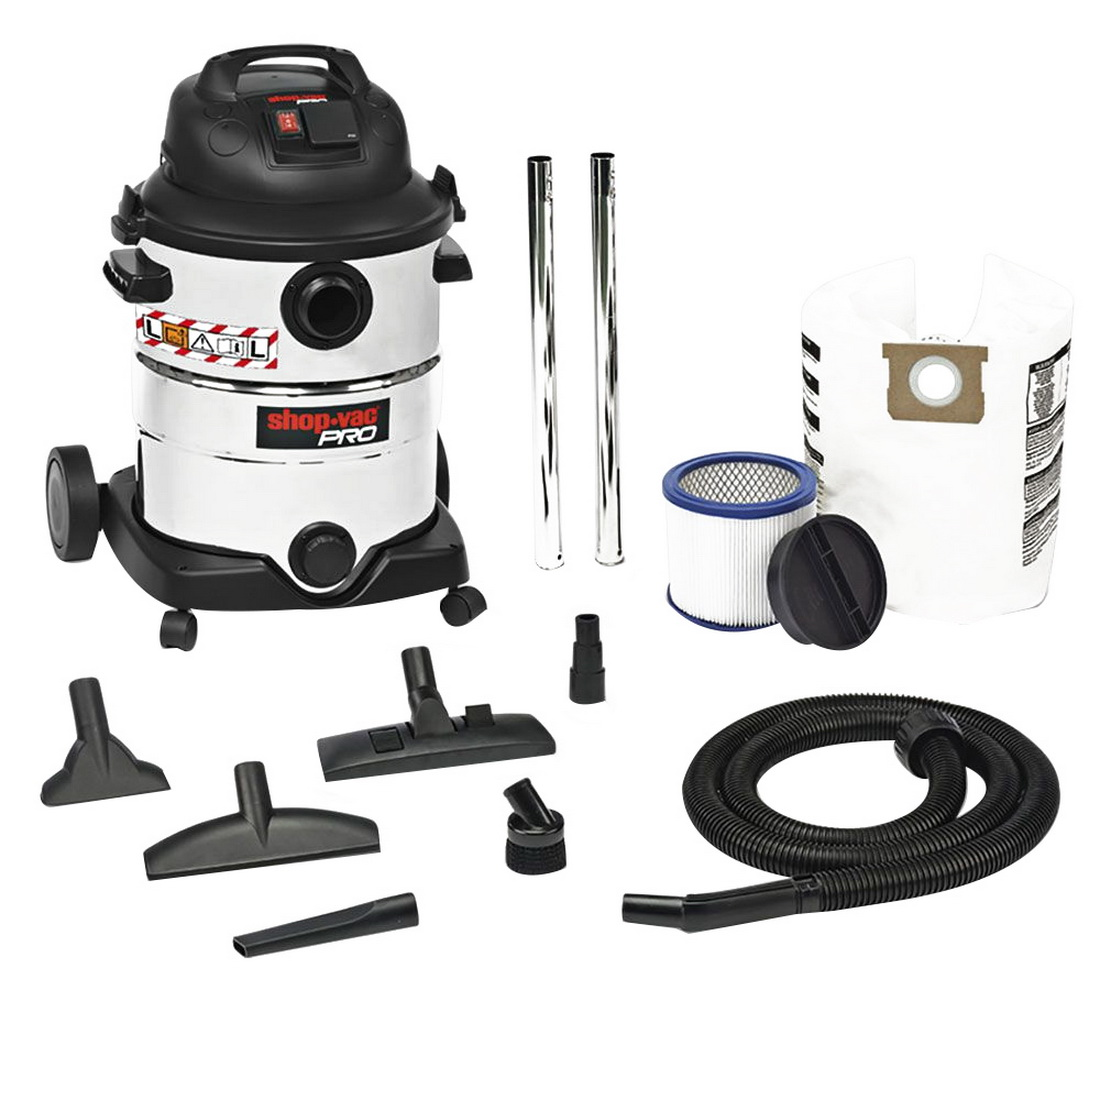 Pro 1400W 40L Stainless Steel L Class Wet/Dry Synchro Vacuum With Power Tool Plug & Hepa Filter